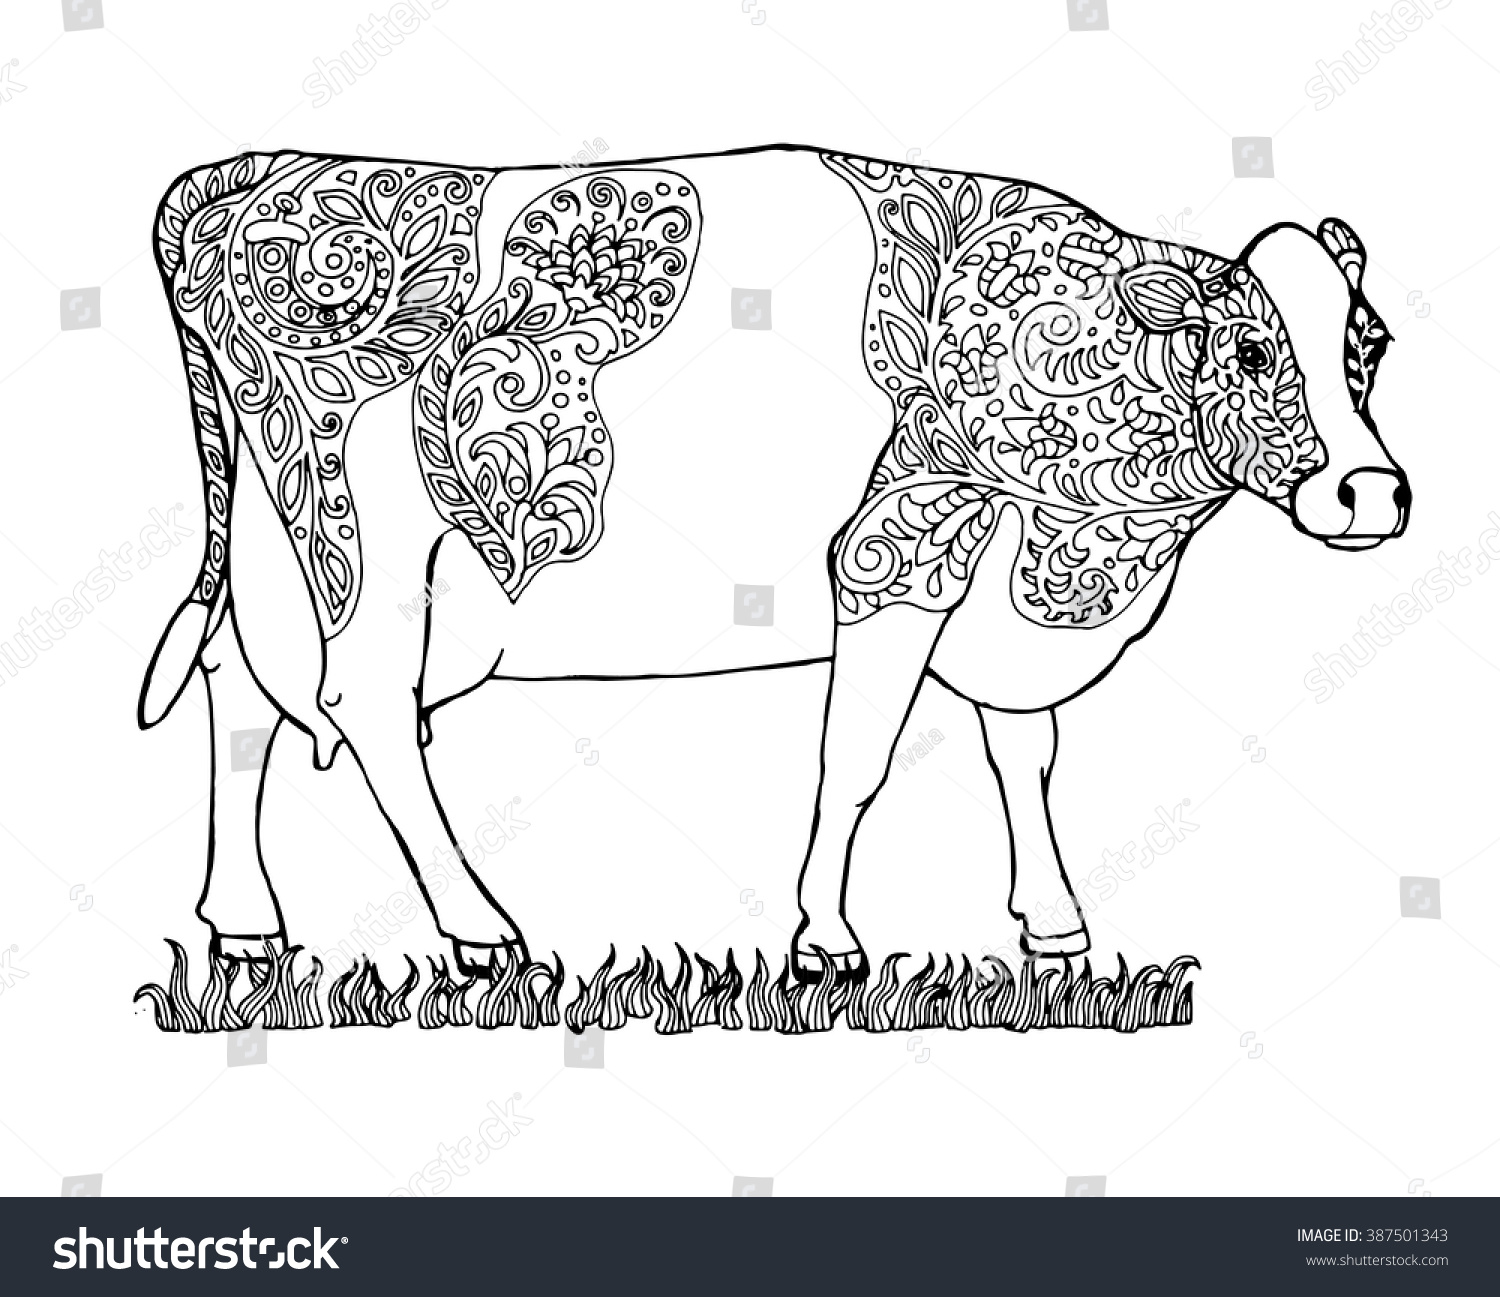 Zen colouring book animals - Brindled Milk Cow On A Meadow Animal Page For Adult Colouring Book Zentangle Vector